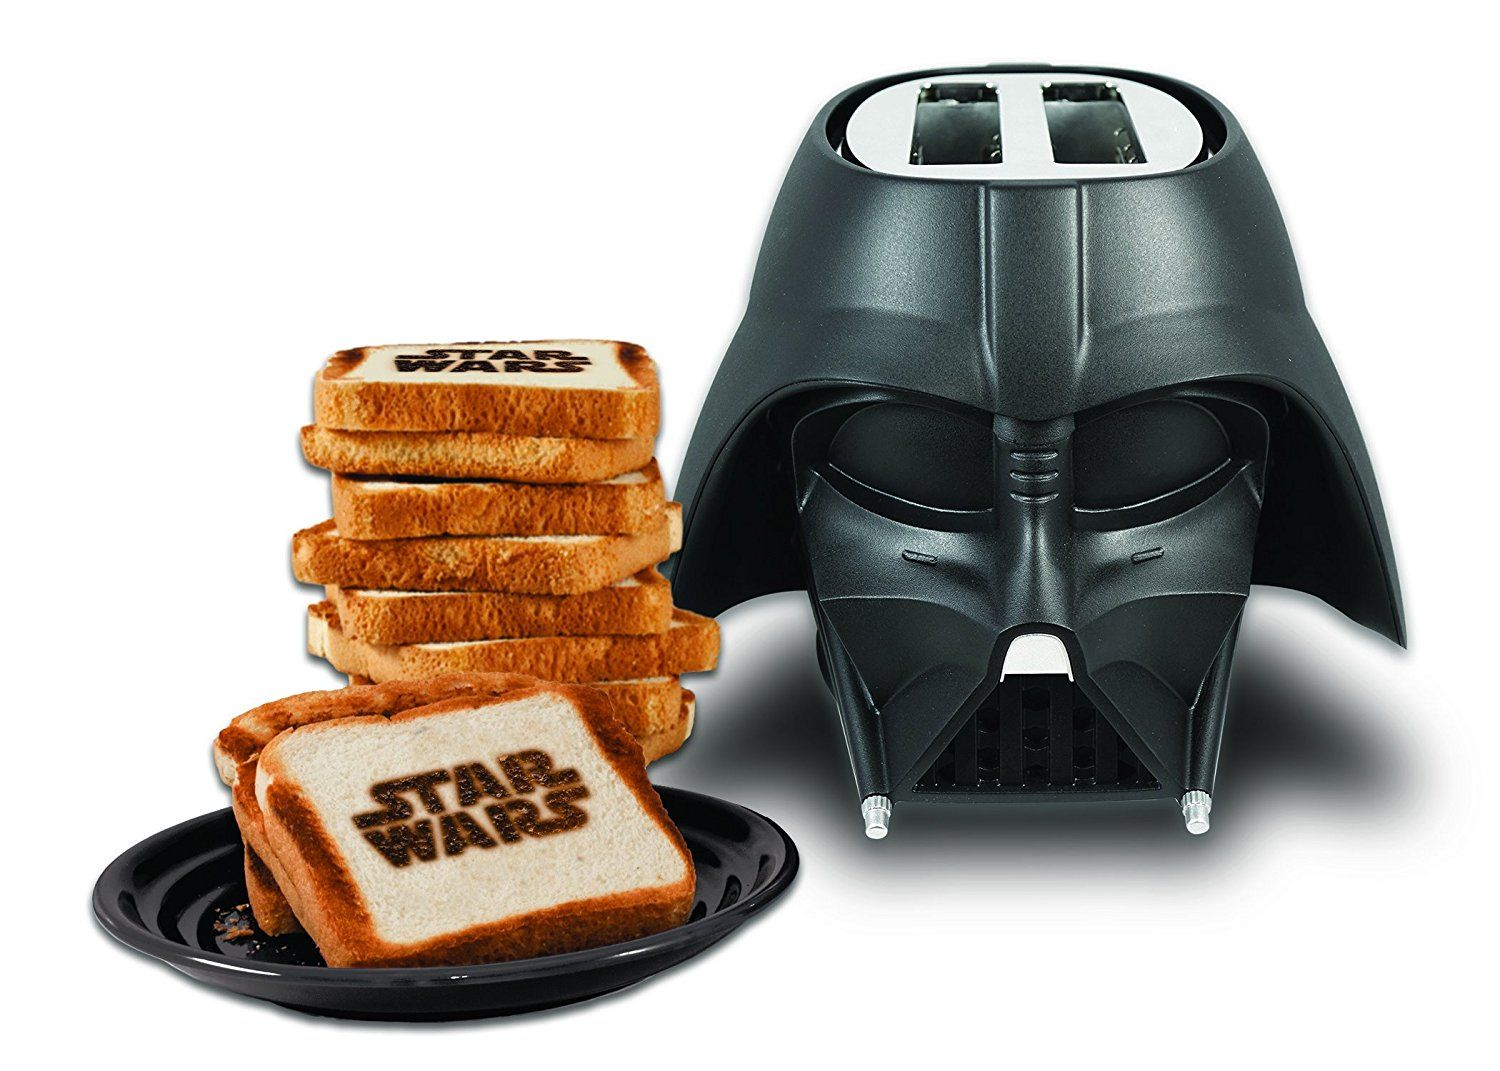 Star Wars Küchenhelfer Lucas Toaster Disney Star Wars Darth Vader Amazon De Spielzeug